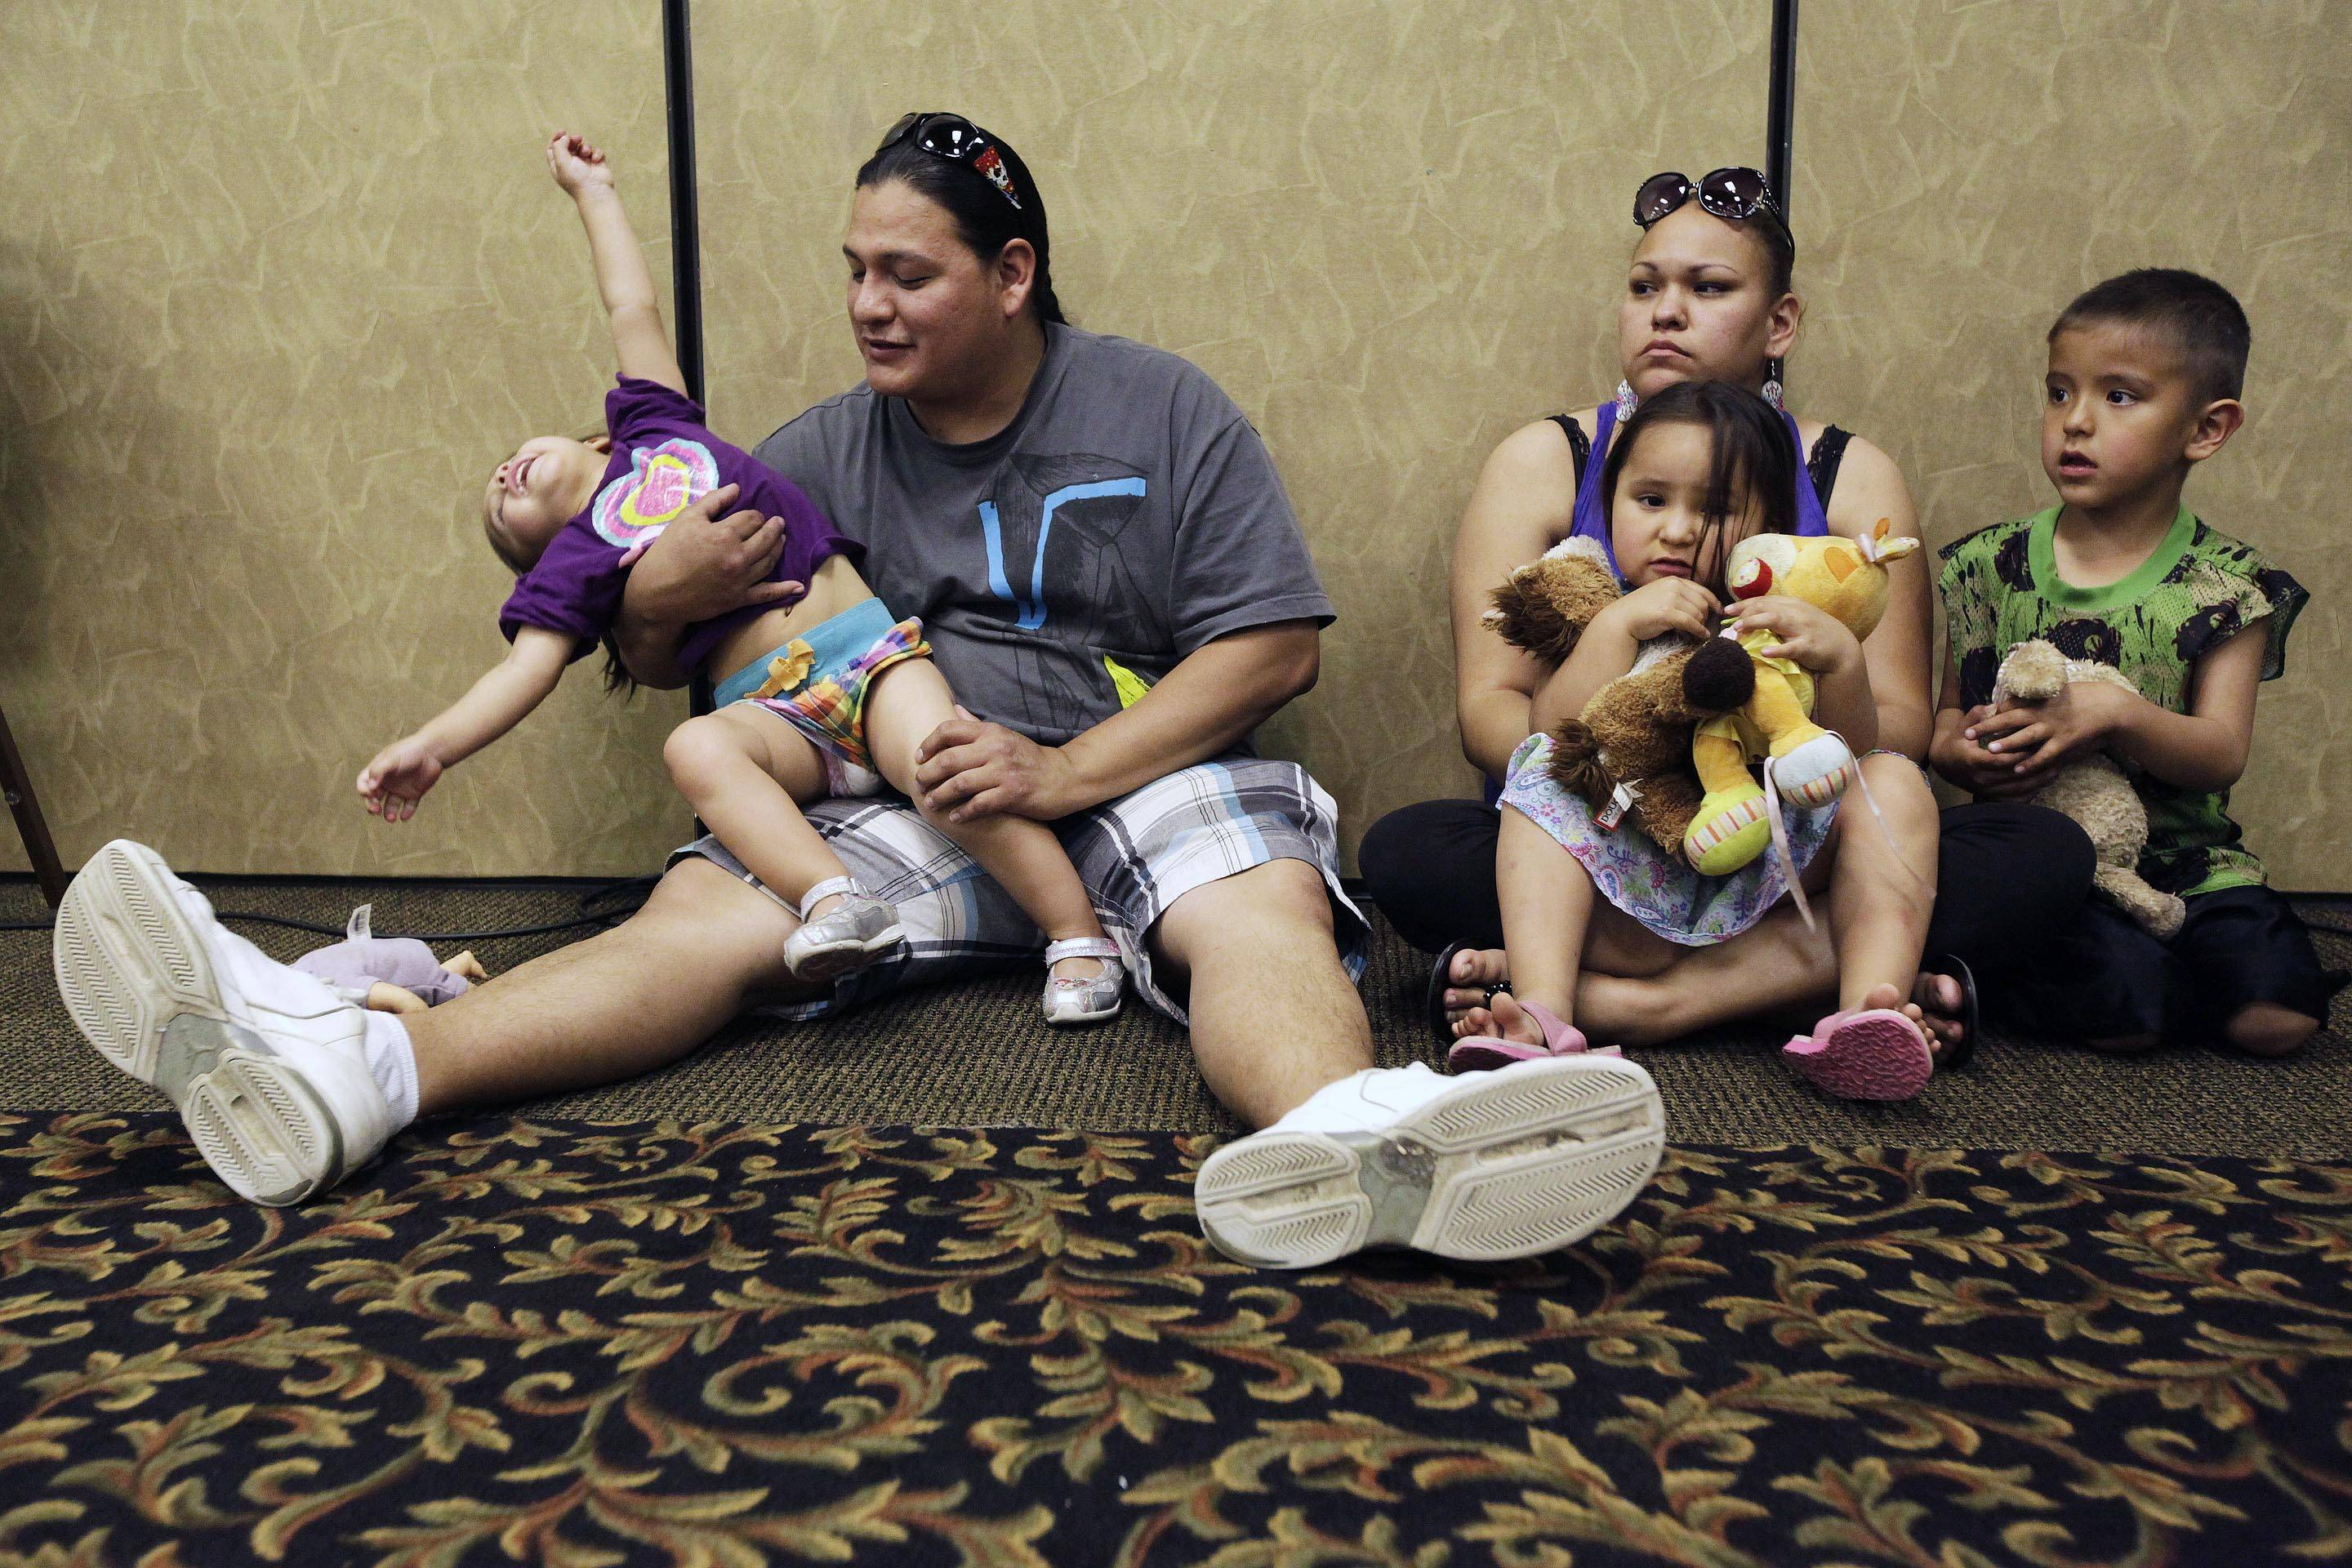 Elijah Bearsheart, left, holds his daughter, Keanala, 1, as he sits with his family, Kehala Diserly, Kiari Diserly, 3, and Yamni Pederson, 5, as they listen to testimony during the Indian Child Welfare Act summit in Rapid City, S.D., in May 2013.